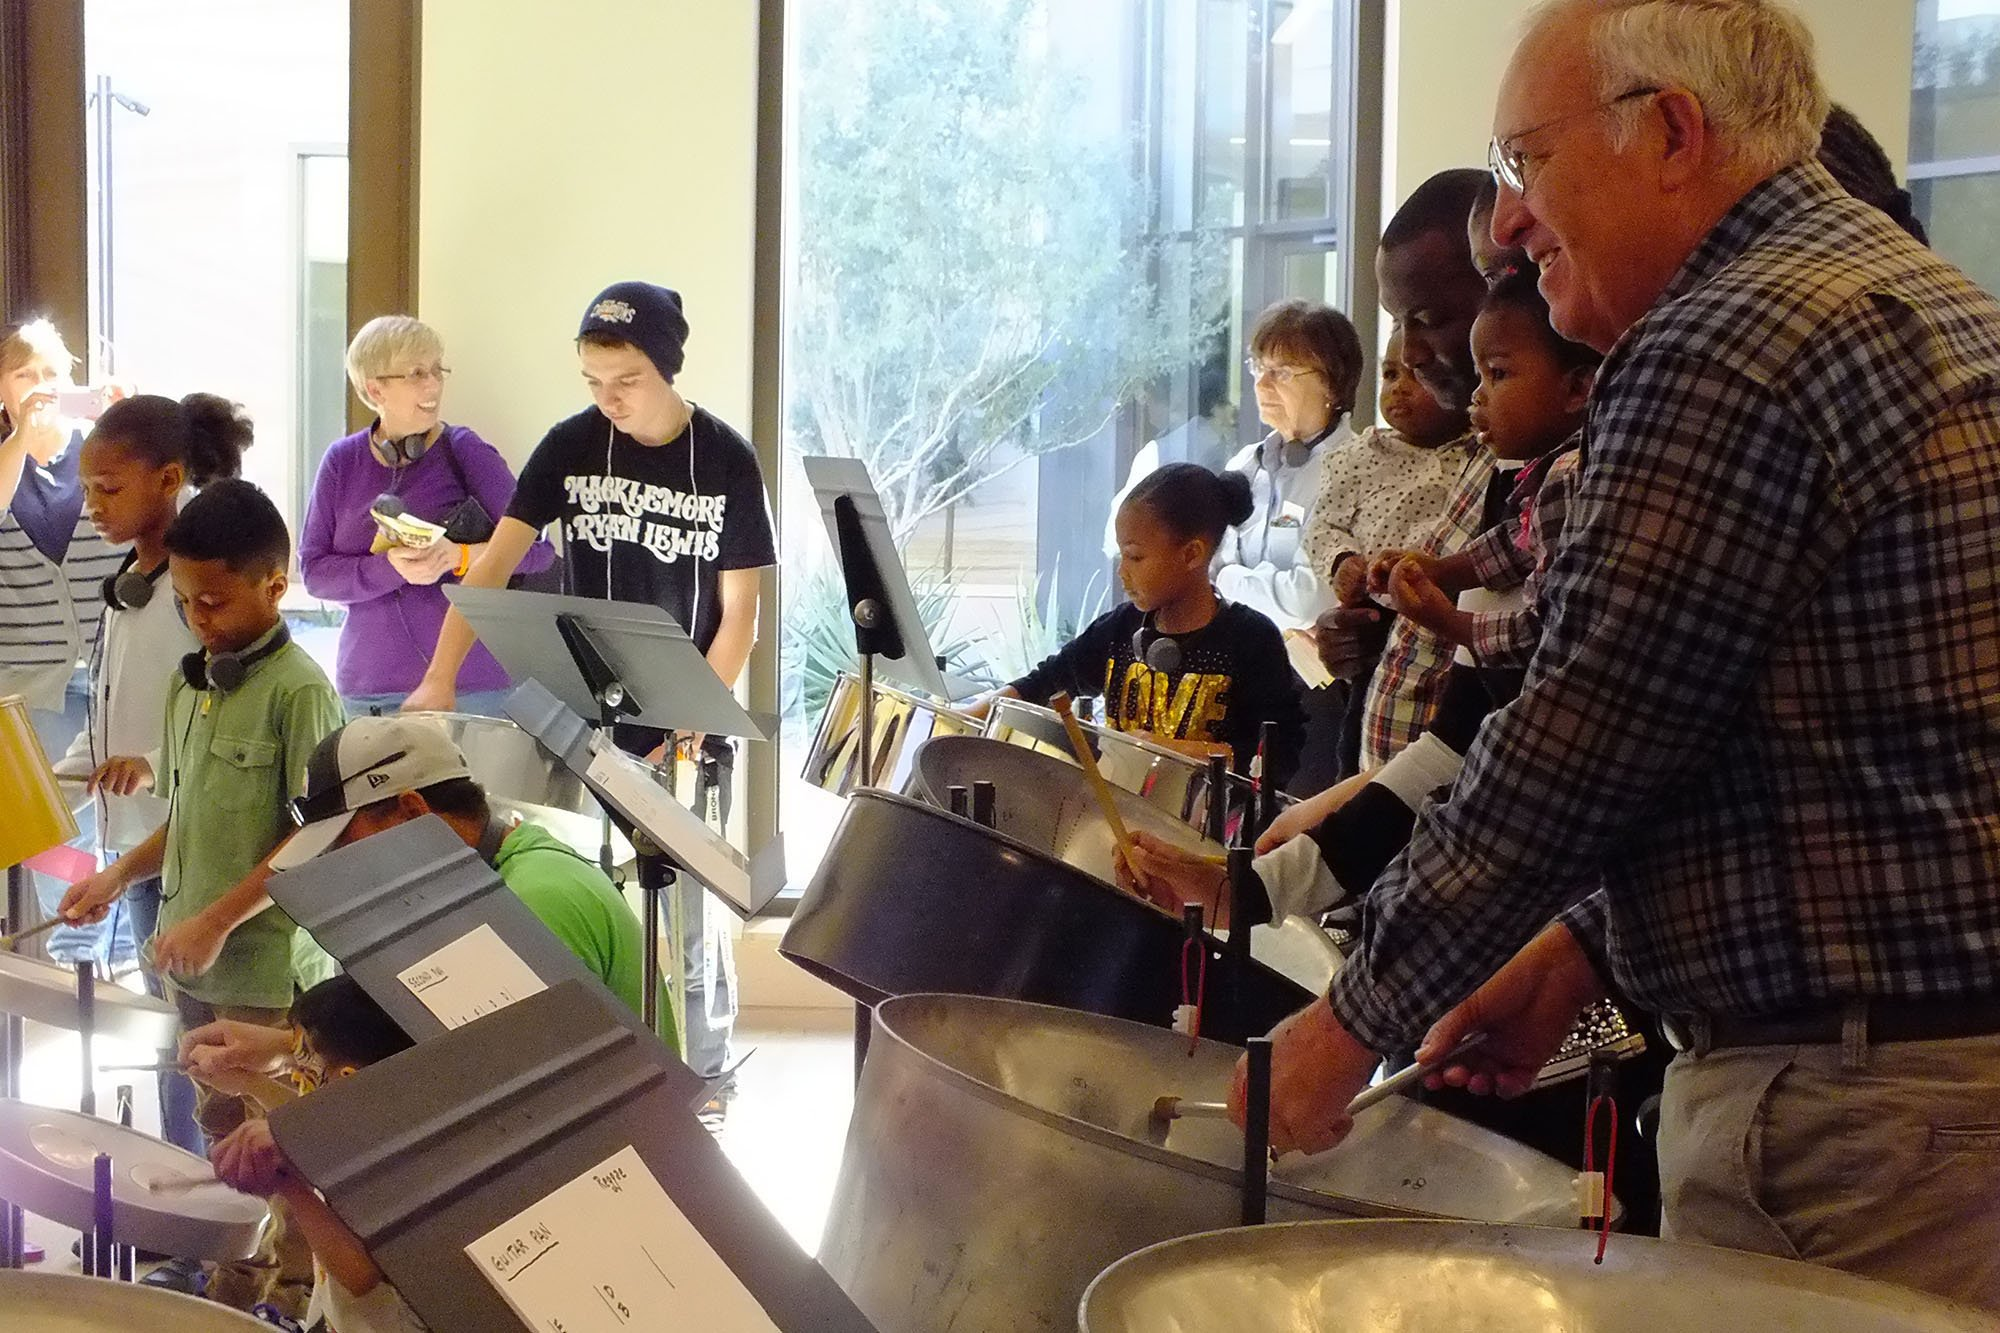 Children get hands-on with instruments at the Musical Instrument Museum in Phoenix, which gets funding from both the National Endowment for the Arts and the Arizona Commission on the Arts, officials said. (Source:  Musical Instrument Museum.)